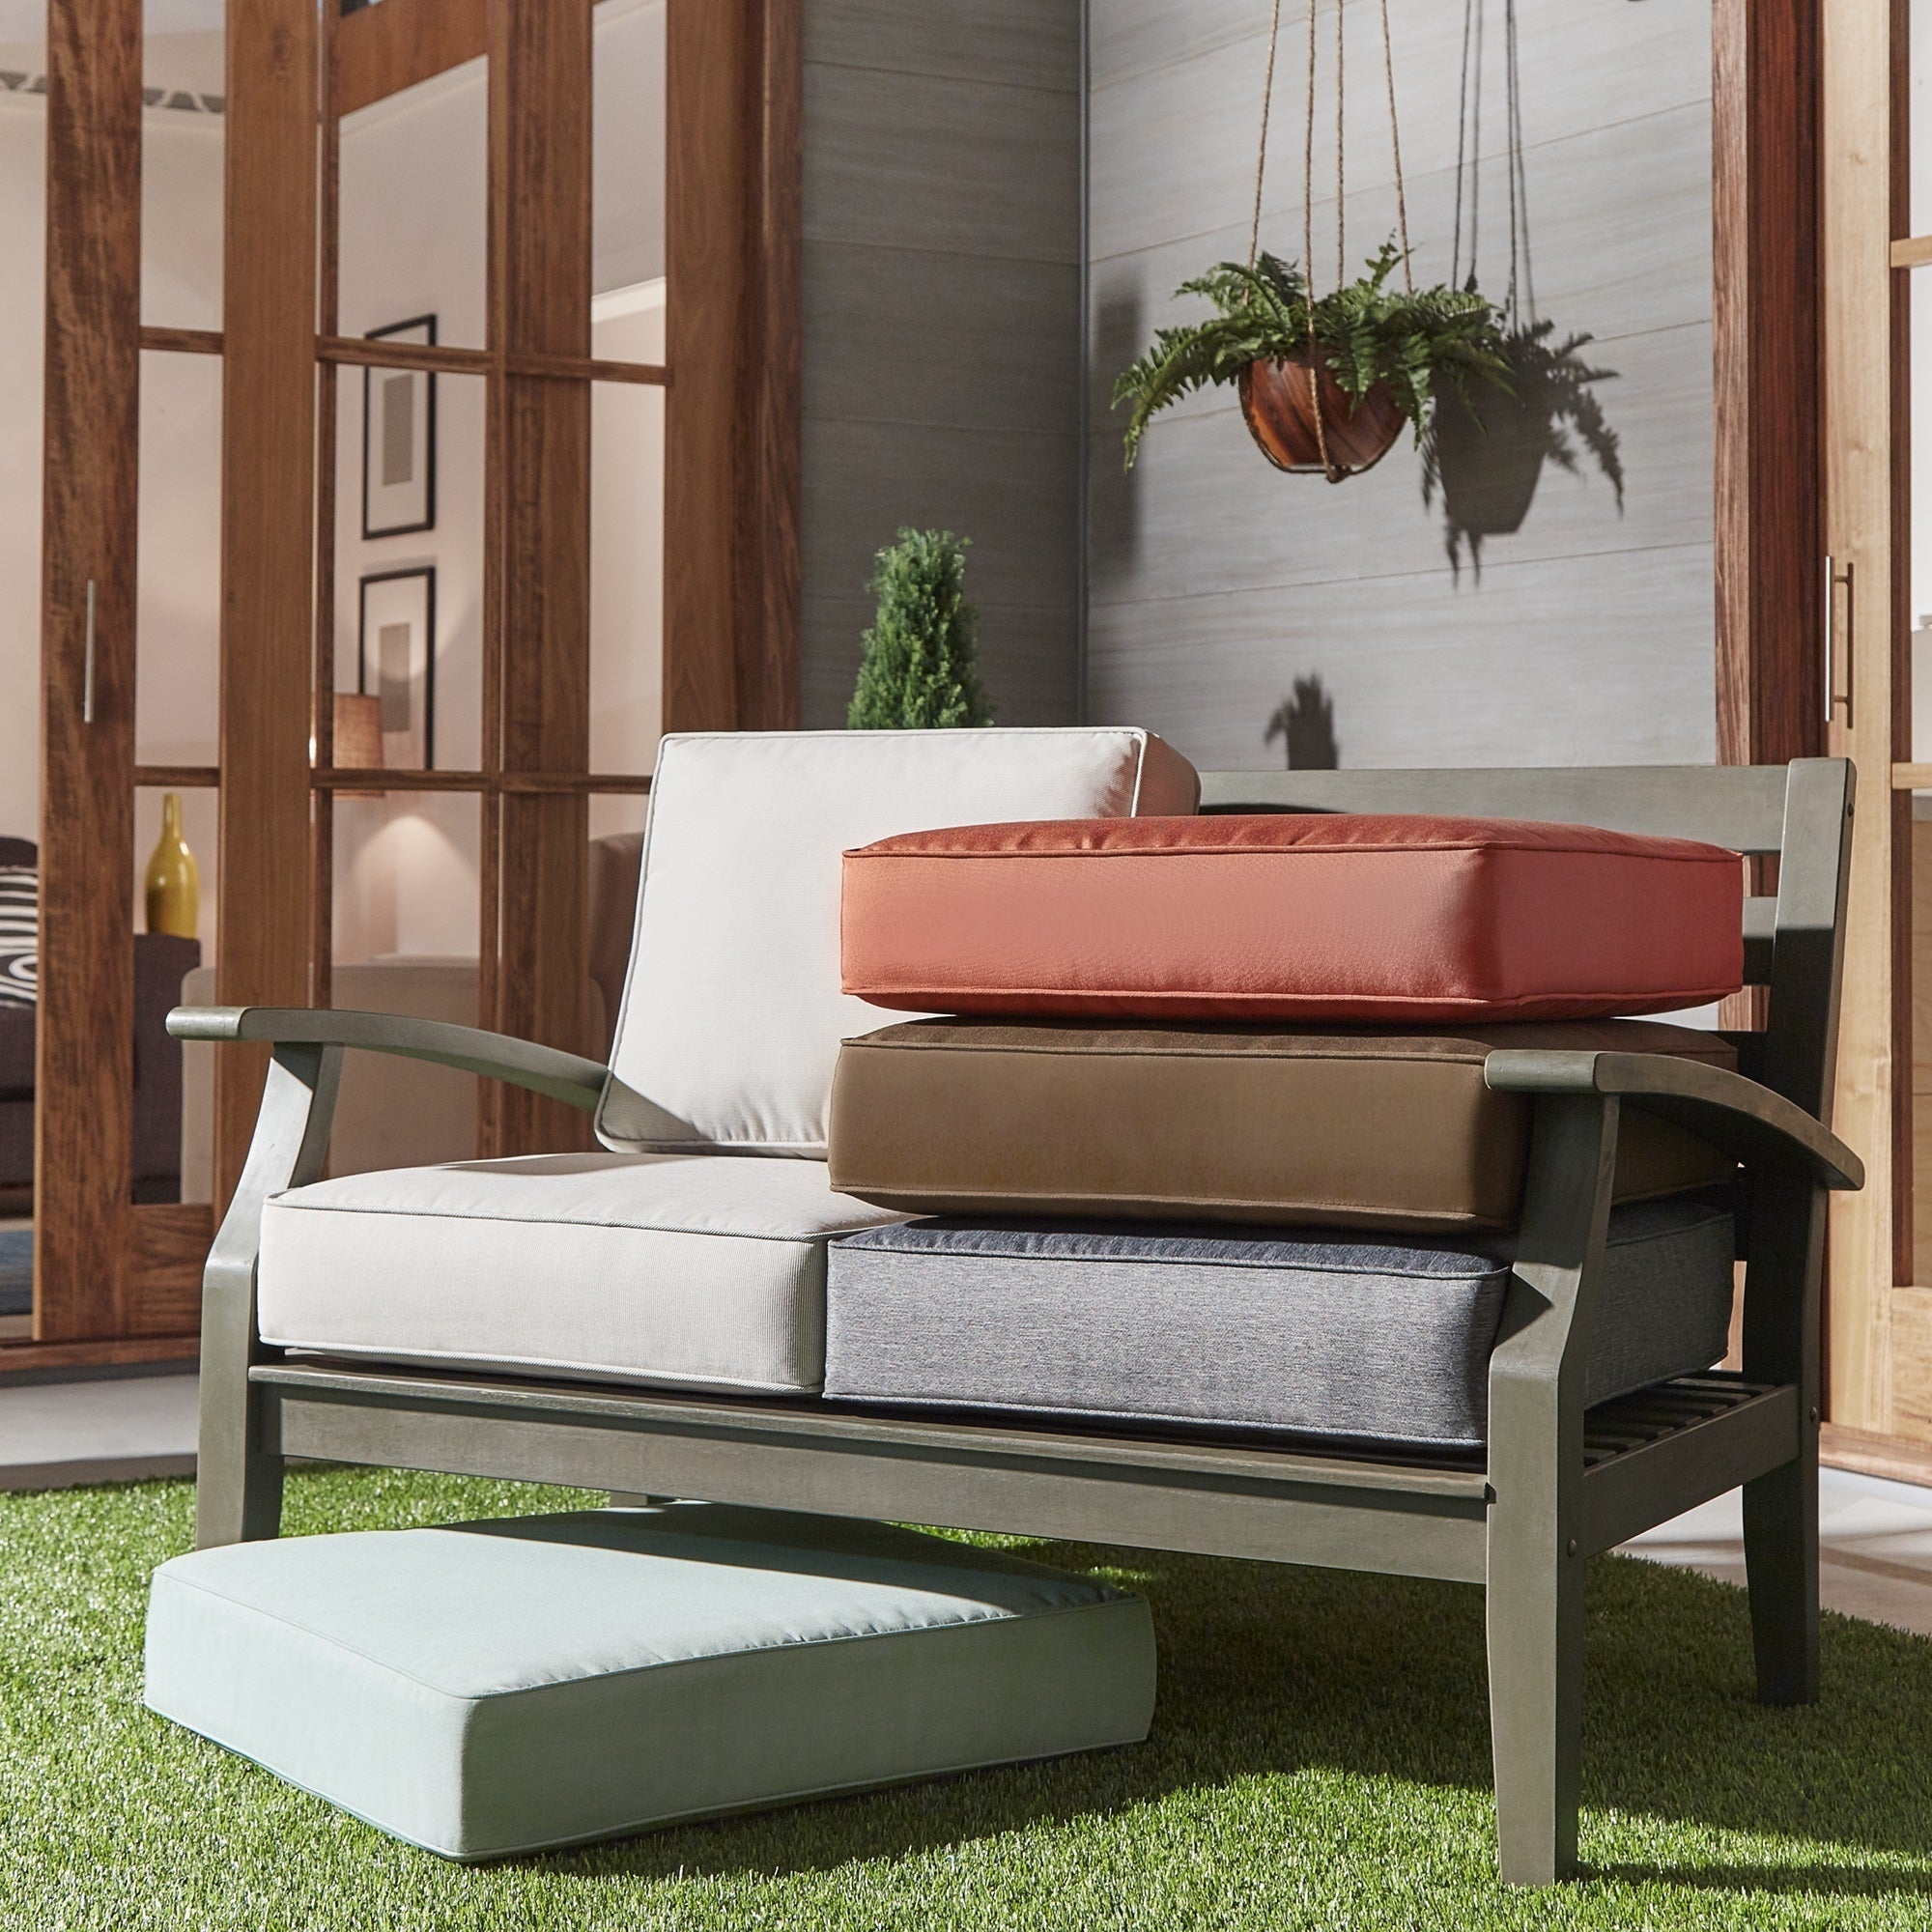 Patio Furniture Loveseat Cushions: Isola Outdoor Fabric Loveseat Cushions INSPIRE Q Oasis